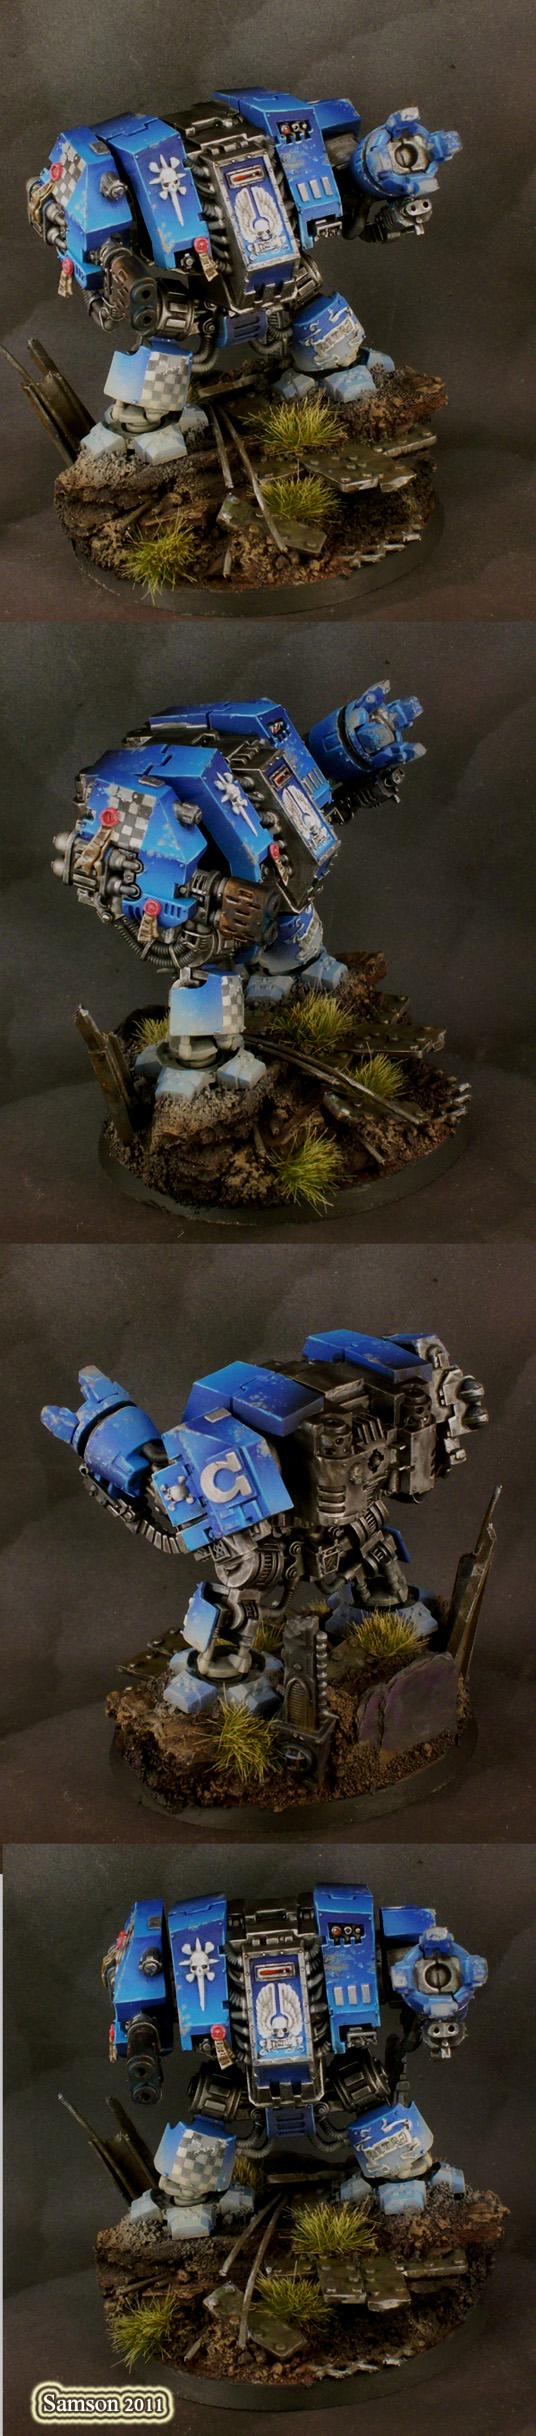 Assault On Black Reach, Awesome, Dccw, Dreadnought, Multimelta, Space Marines